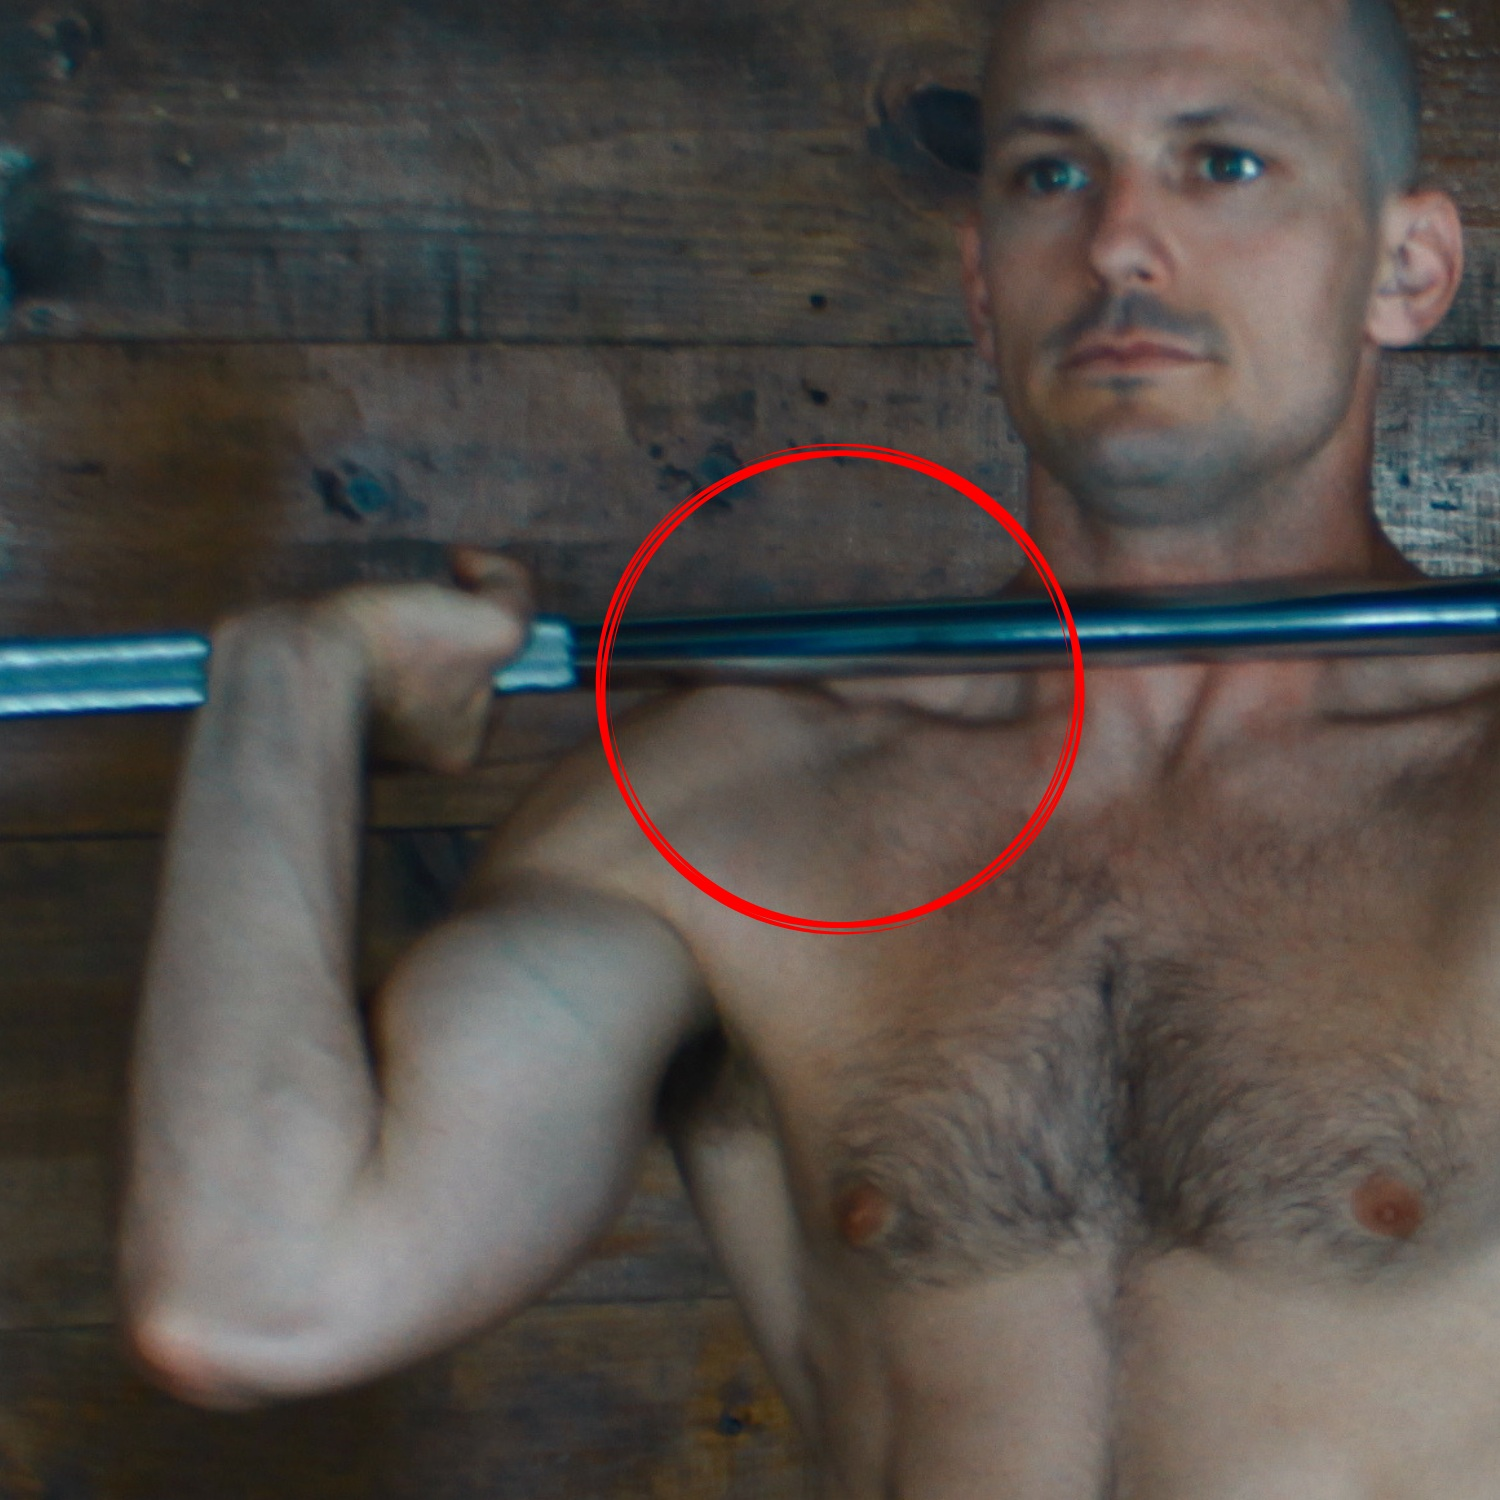 When front racking the bar, our goal is to have the bar resting on the shoulders with the wrists and hands relaxed. The bar should NOT be held/supported by the arms, but instead be supported by the trunk. We are looking for four points of contact: the outsides of the shoulders and the area around the collarbones. -